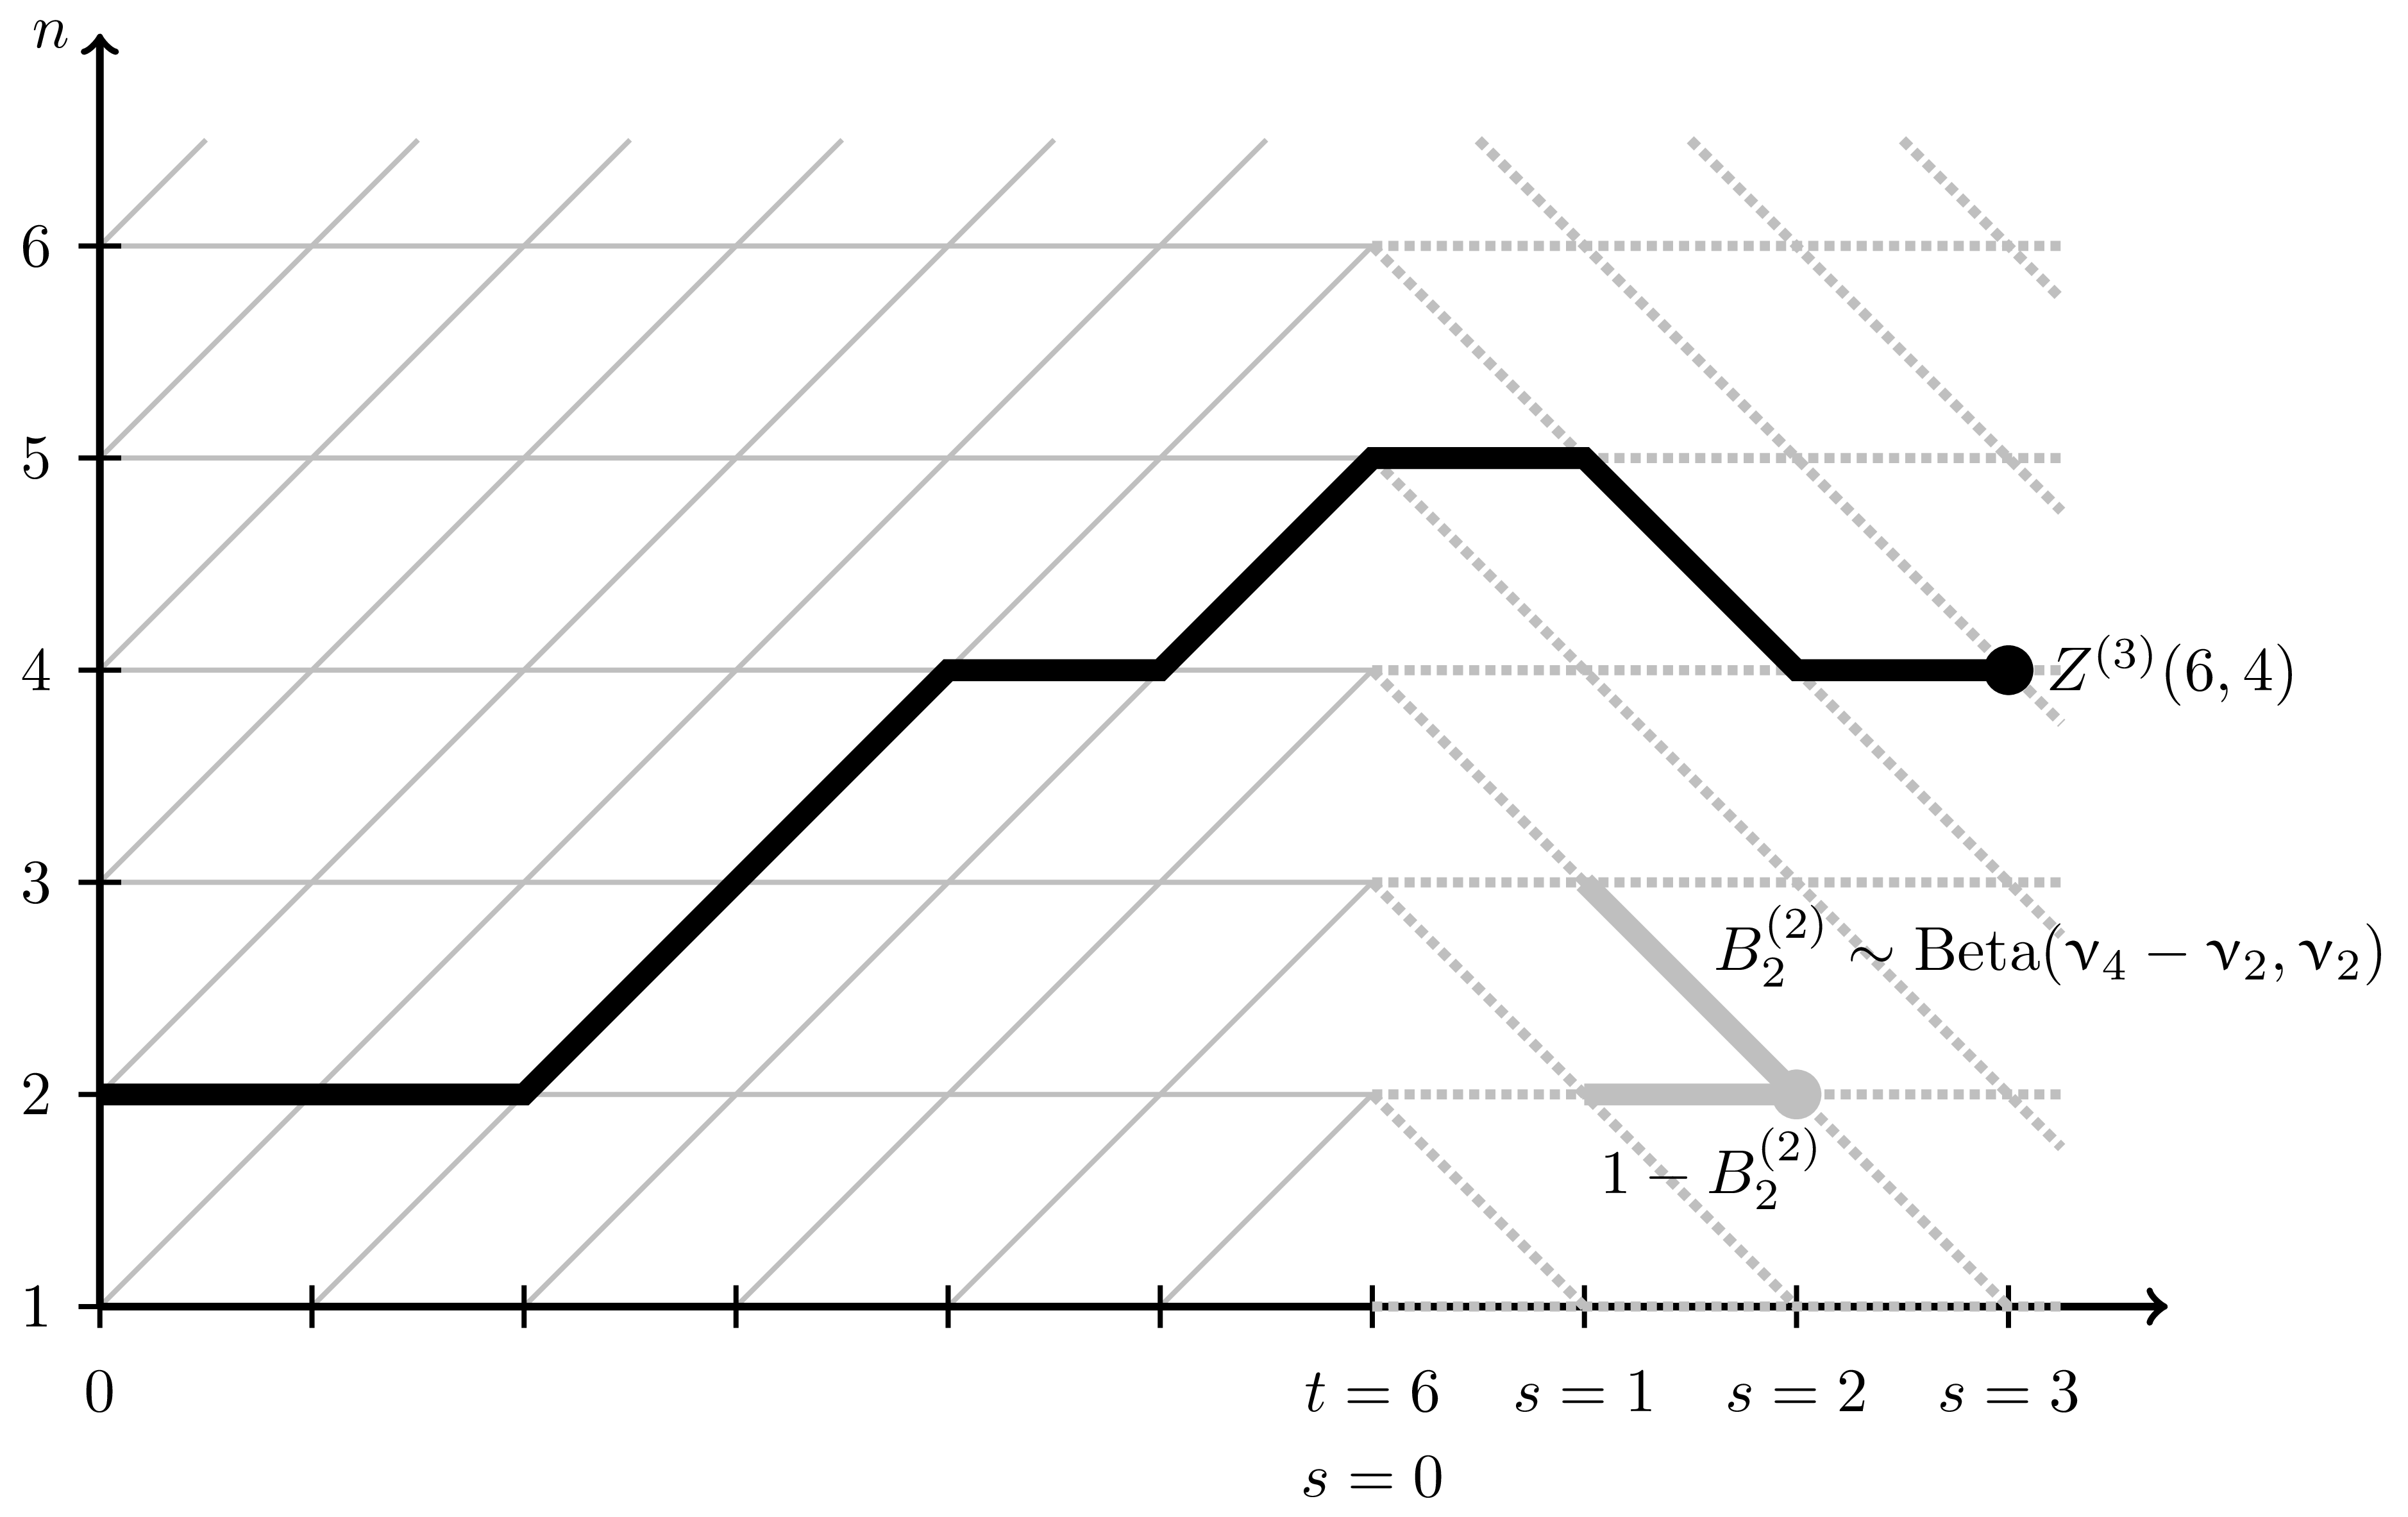 Modification of the lattice leading to the elimination of parameters of the beta polymer